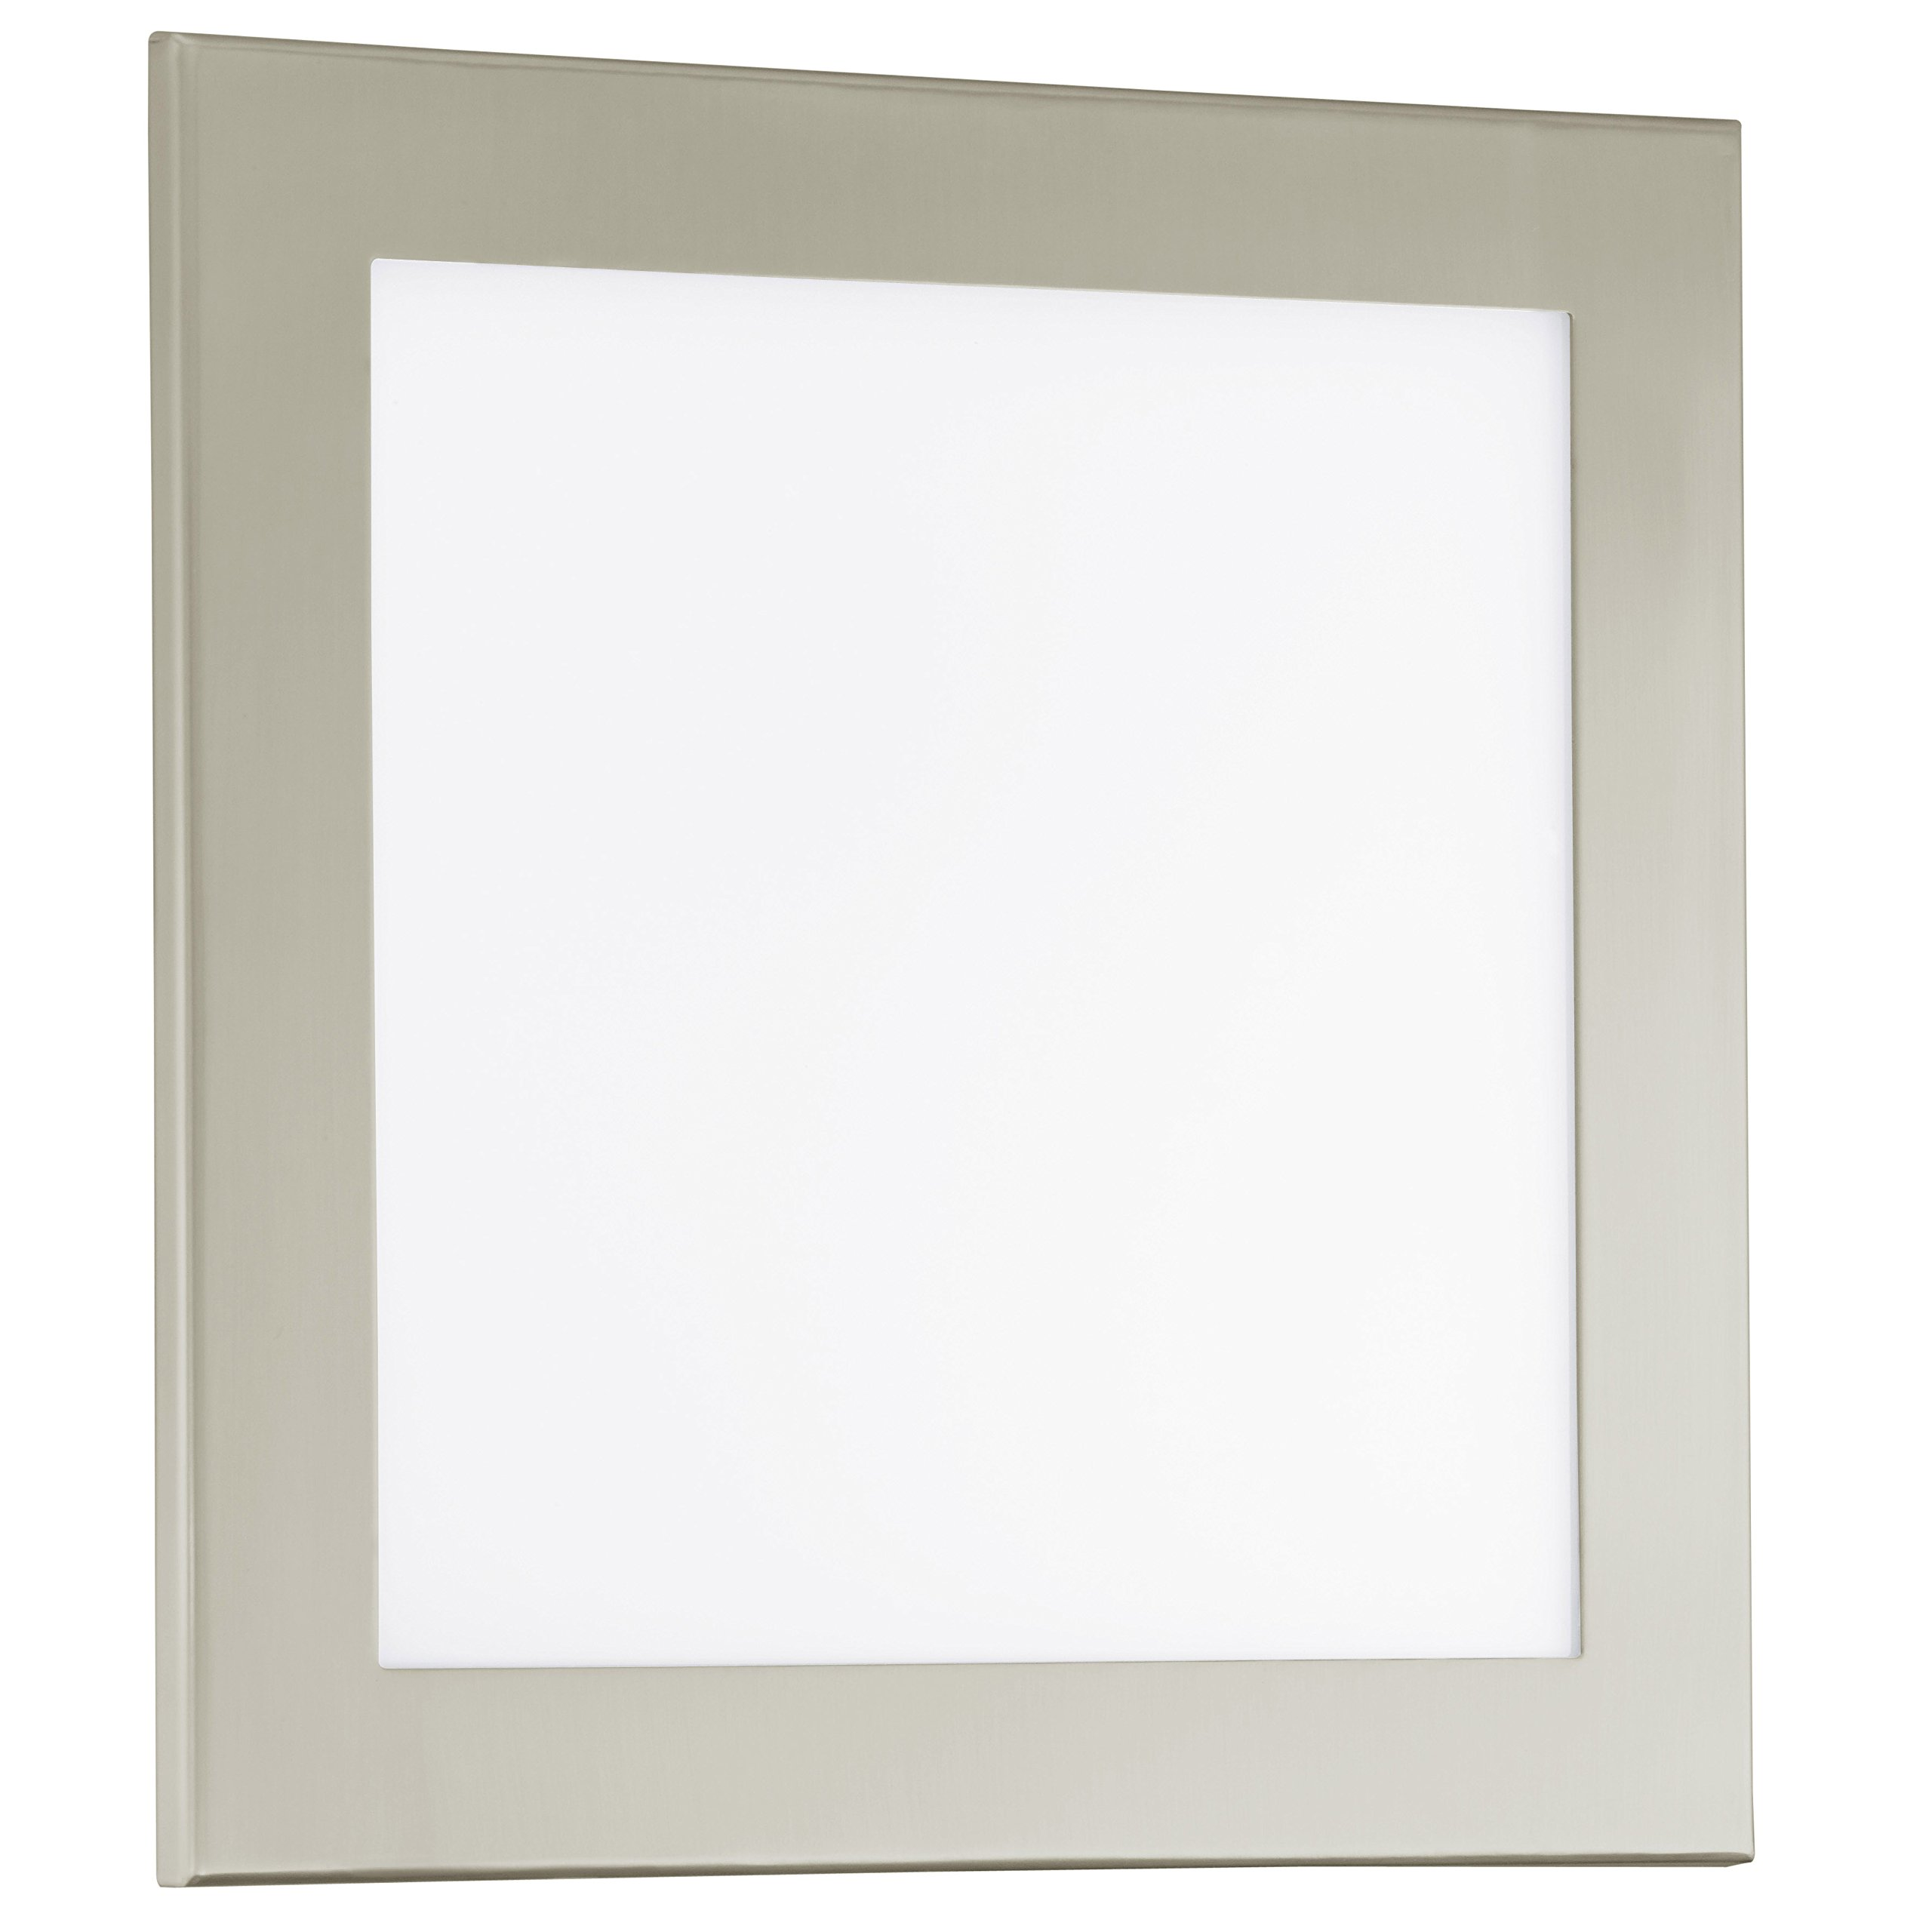 Eglo 91683A LED Ceiling Light with Satin Glass, Matte Nickel Finish